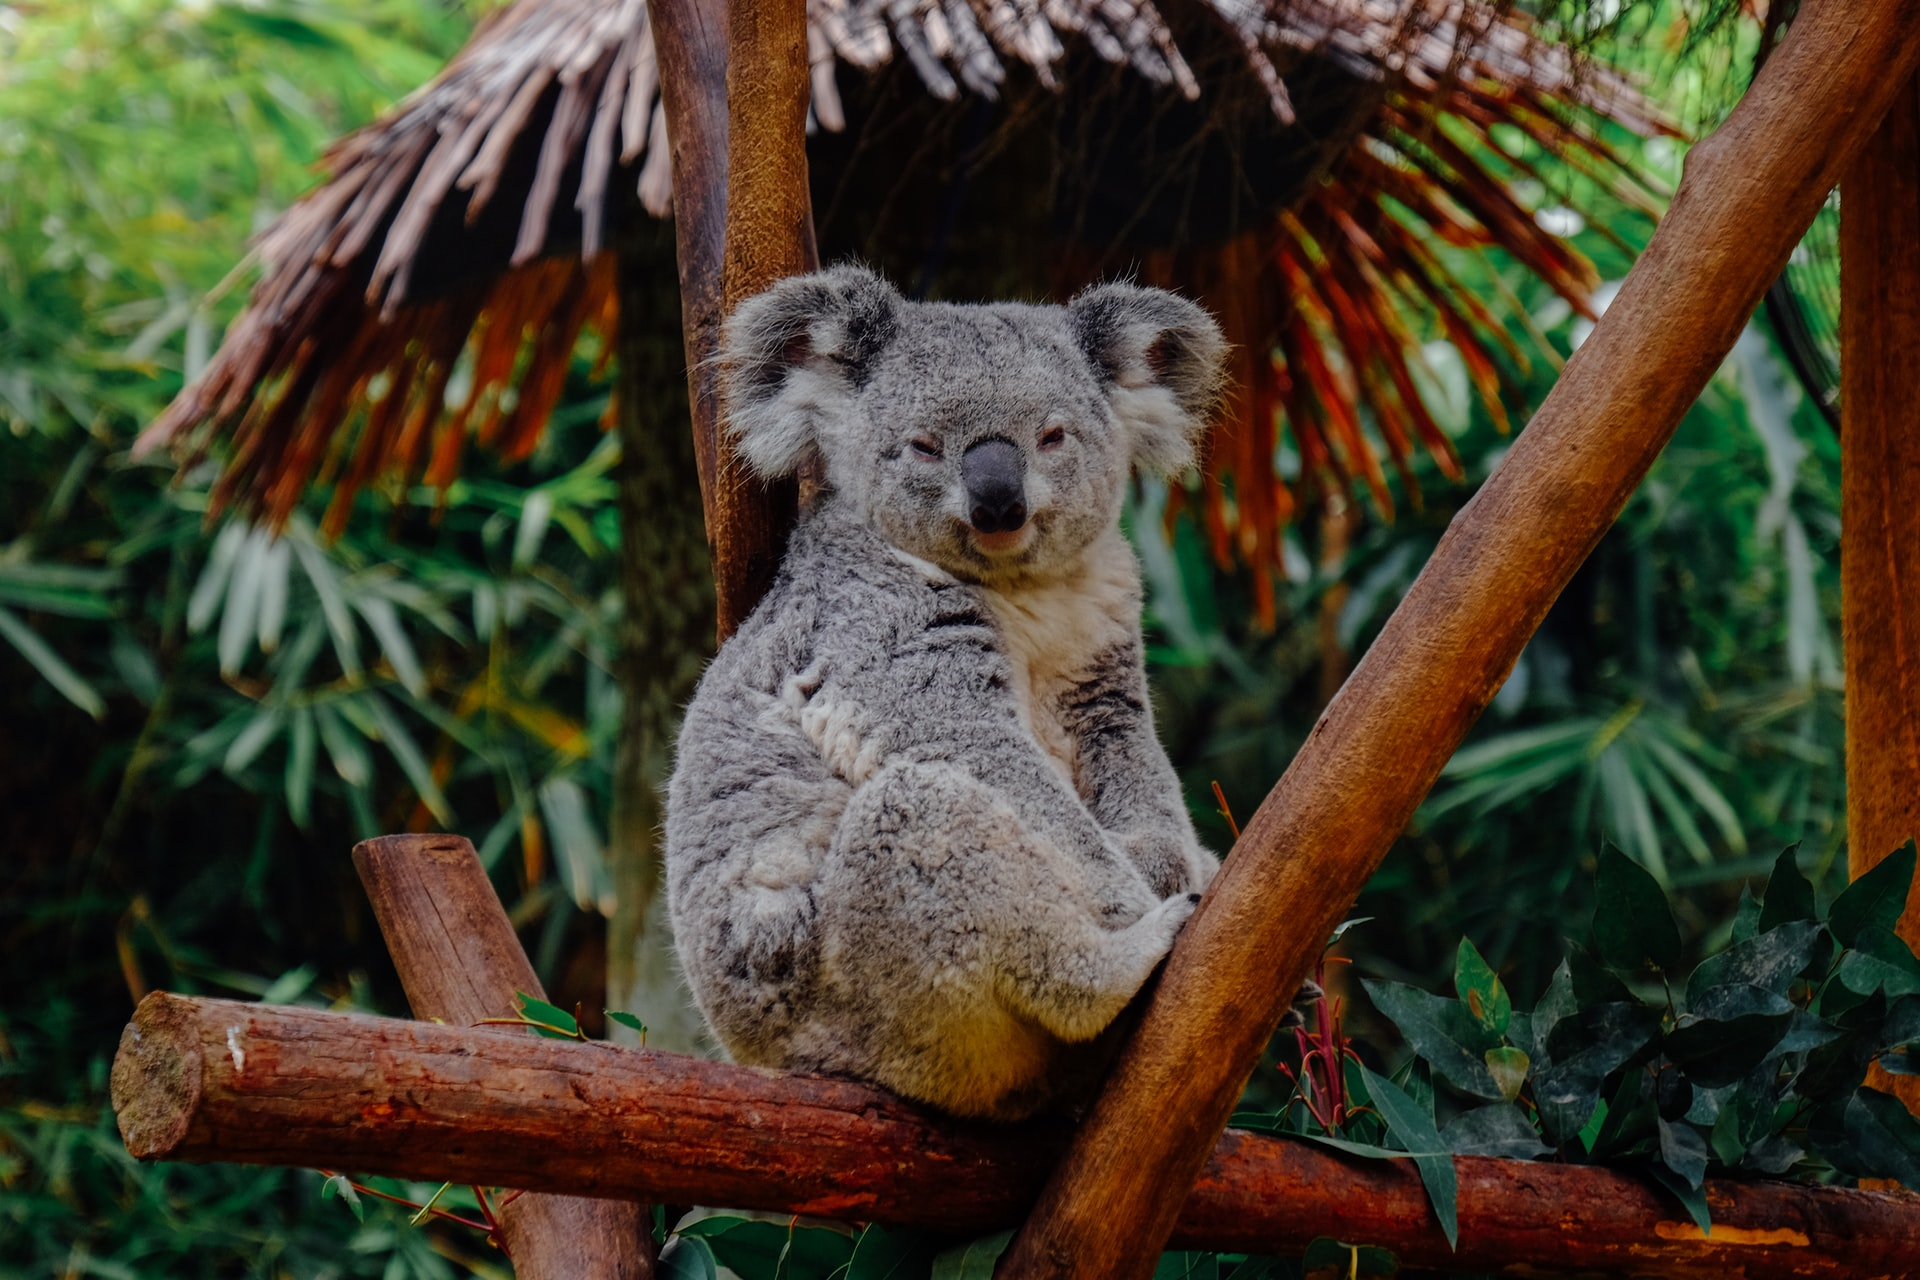 Please save the koalas.